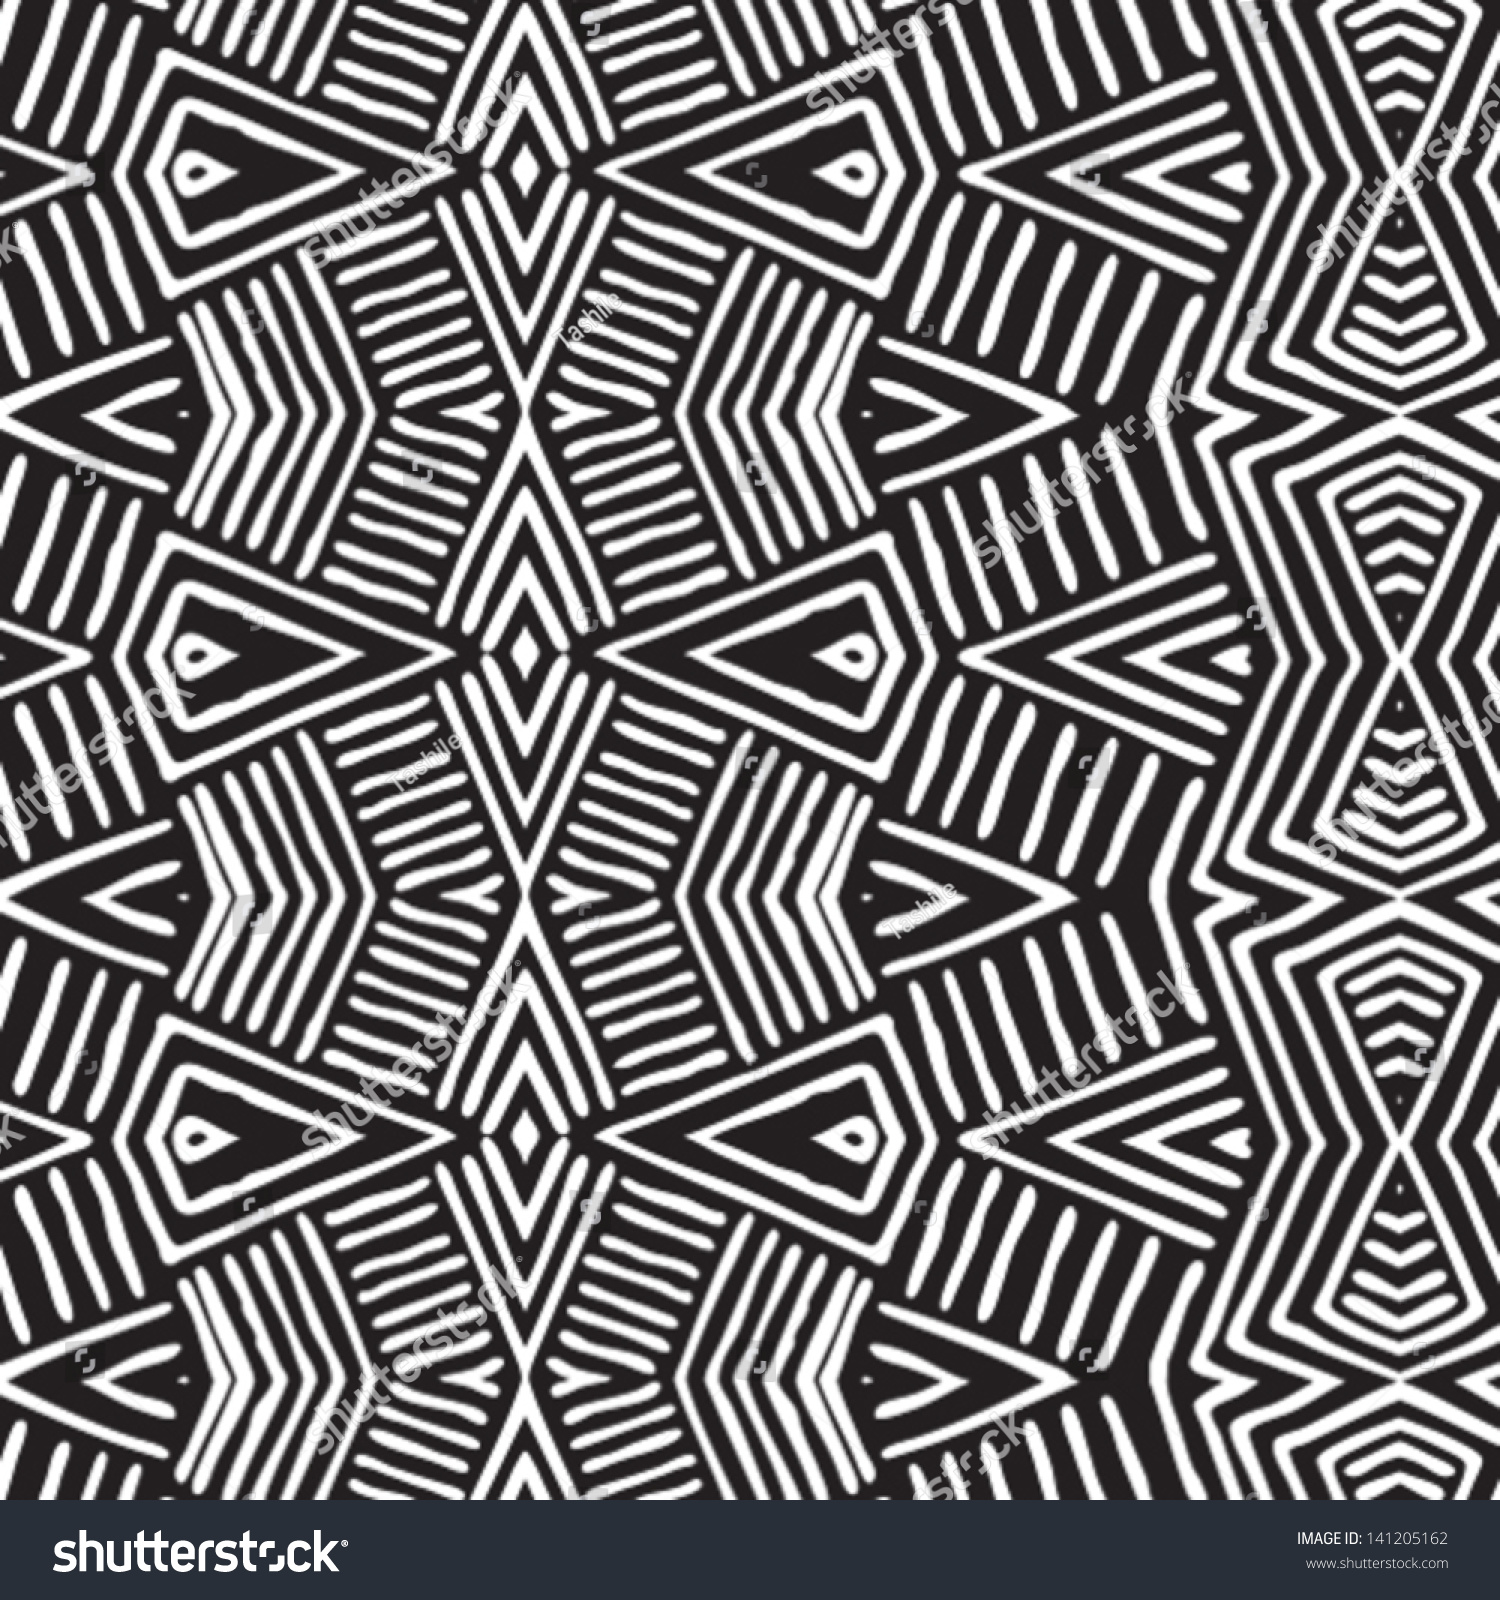 stock-vector-vector-african-pattern-seamlessly-tiling-seamless-pattern ... African Designs And Patterns